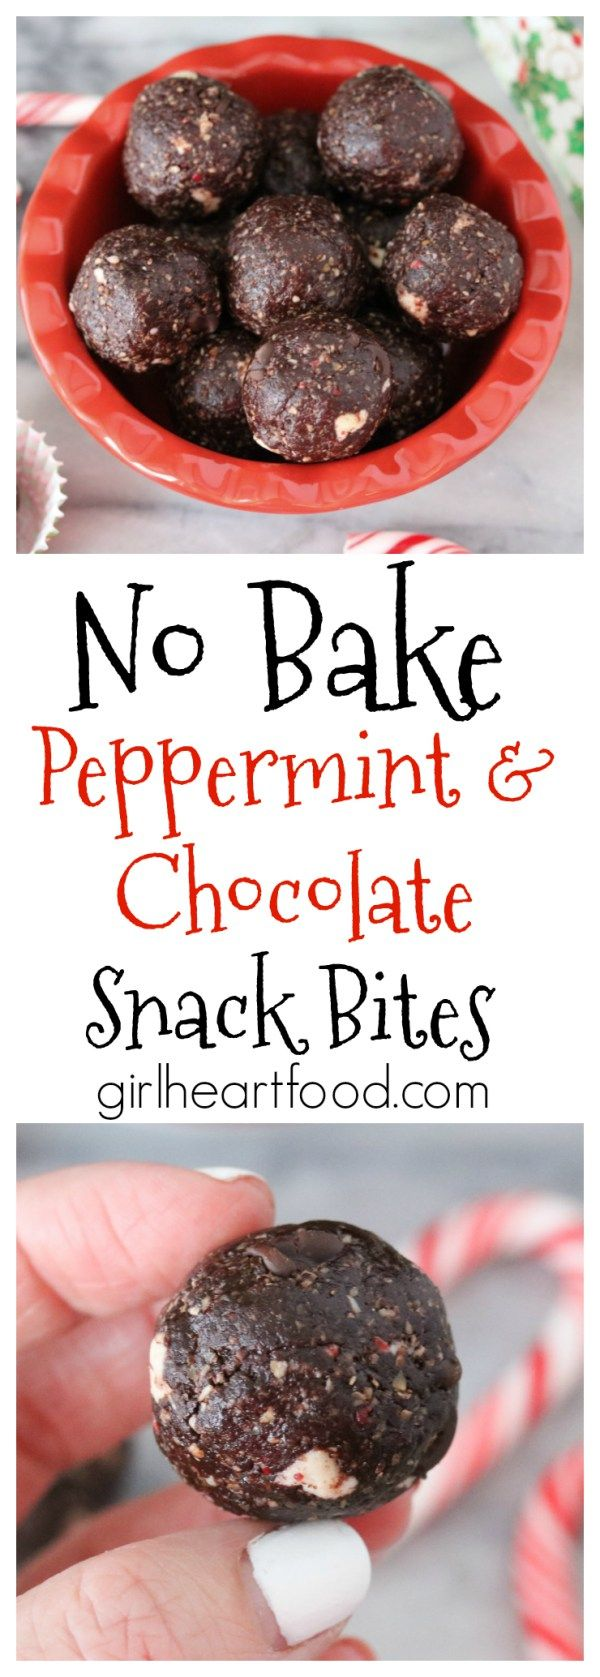 These festive No Bake Peppermint Chocolate Snack Bites require only 10 minutes of prep and taste delicious!  Perfect for gifting! #energybites #peppermint #holidaycookies #christmascookies #chocolate #energyballs